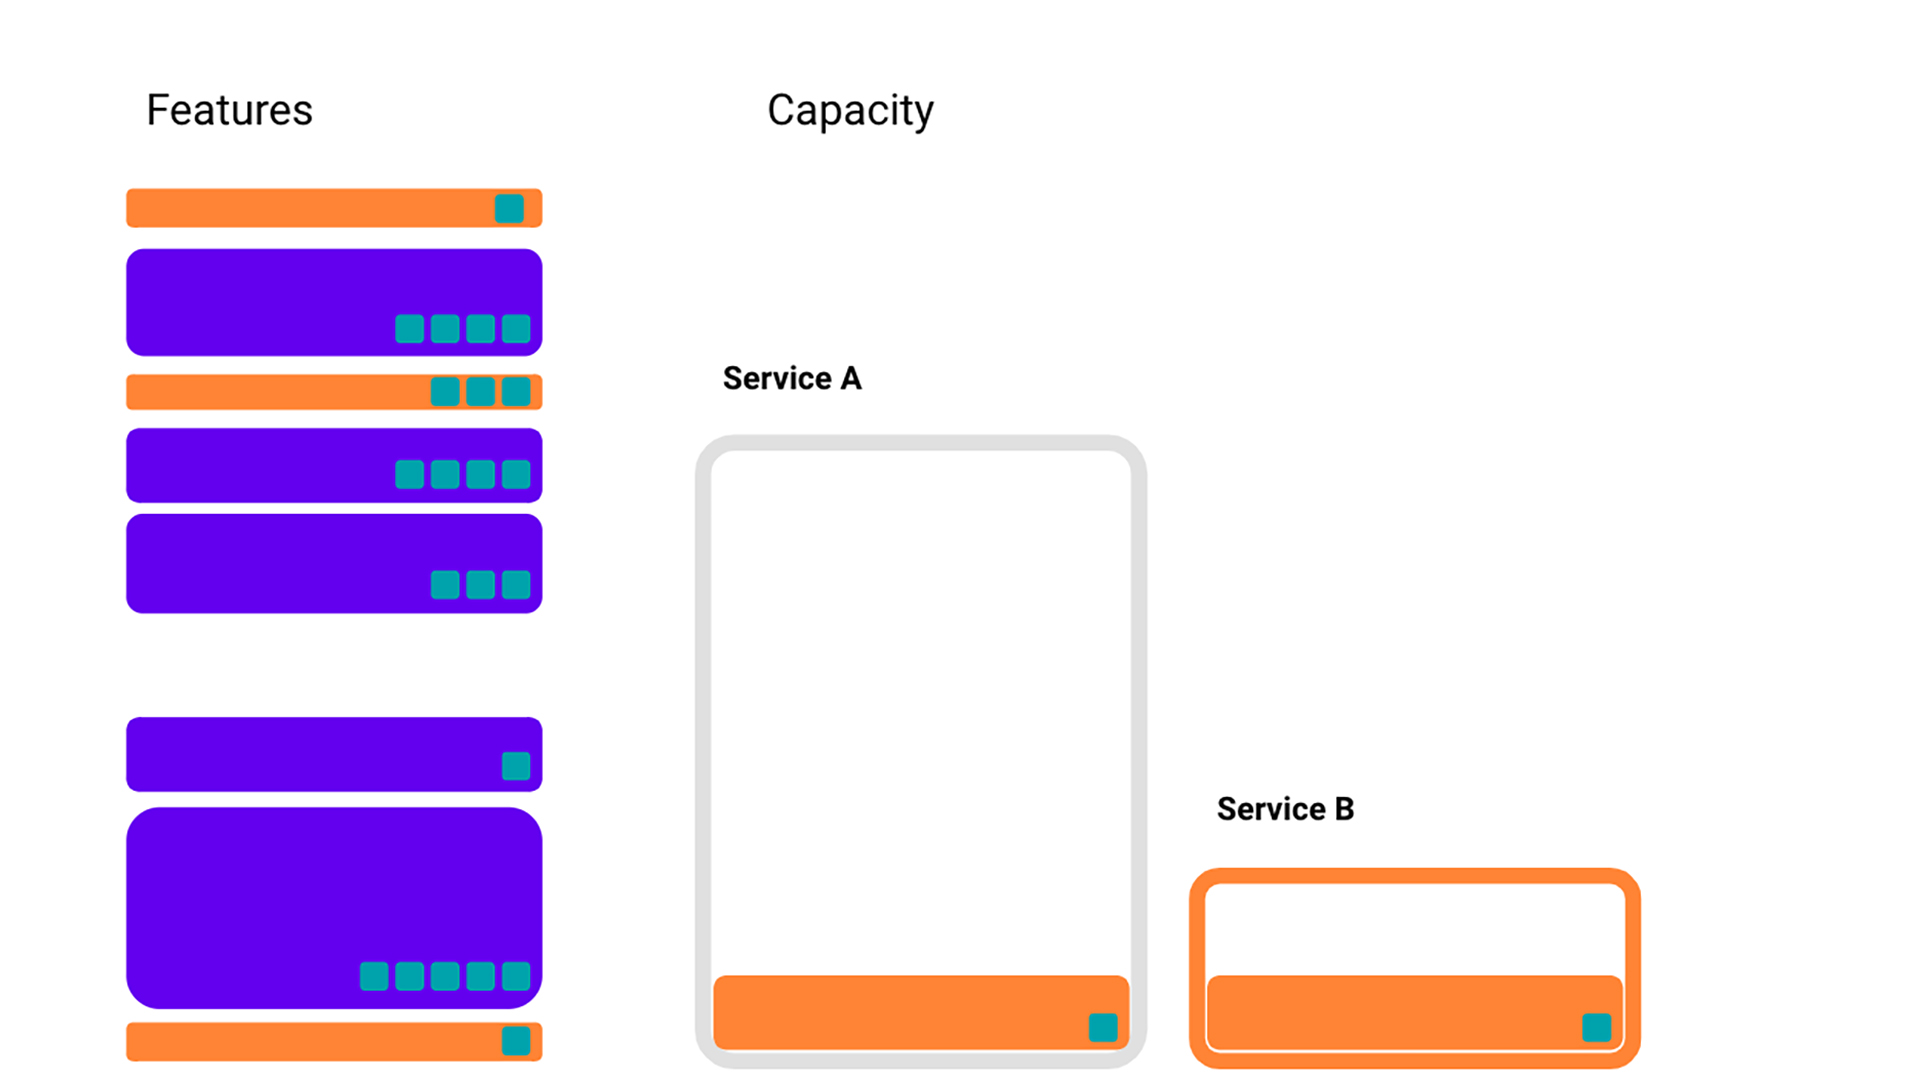 We can make our example slightly more sophisticated by adding in Service B, and saying that orange features take up space in both Service A and Service B.